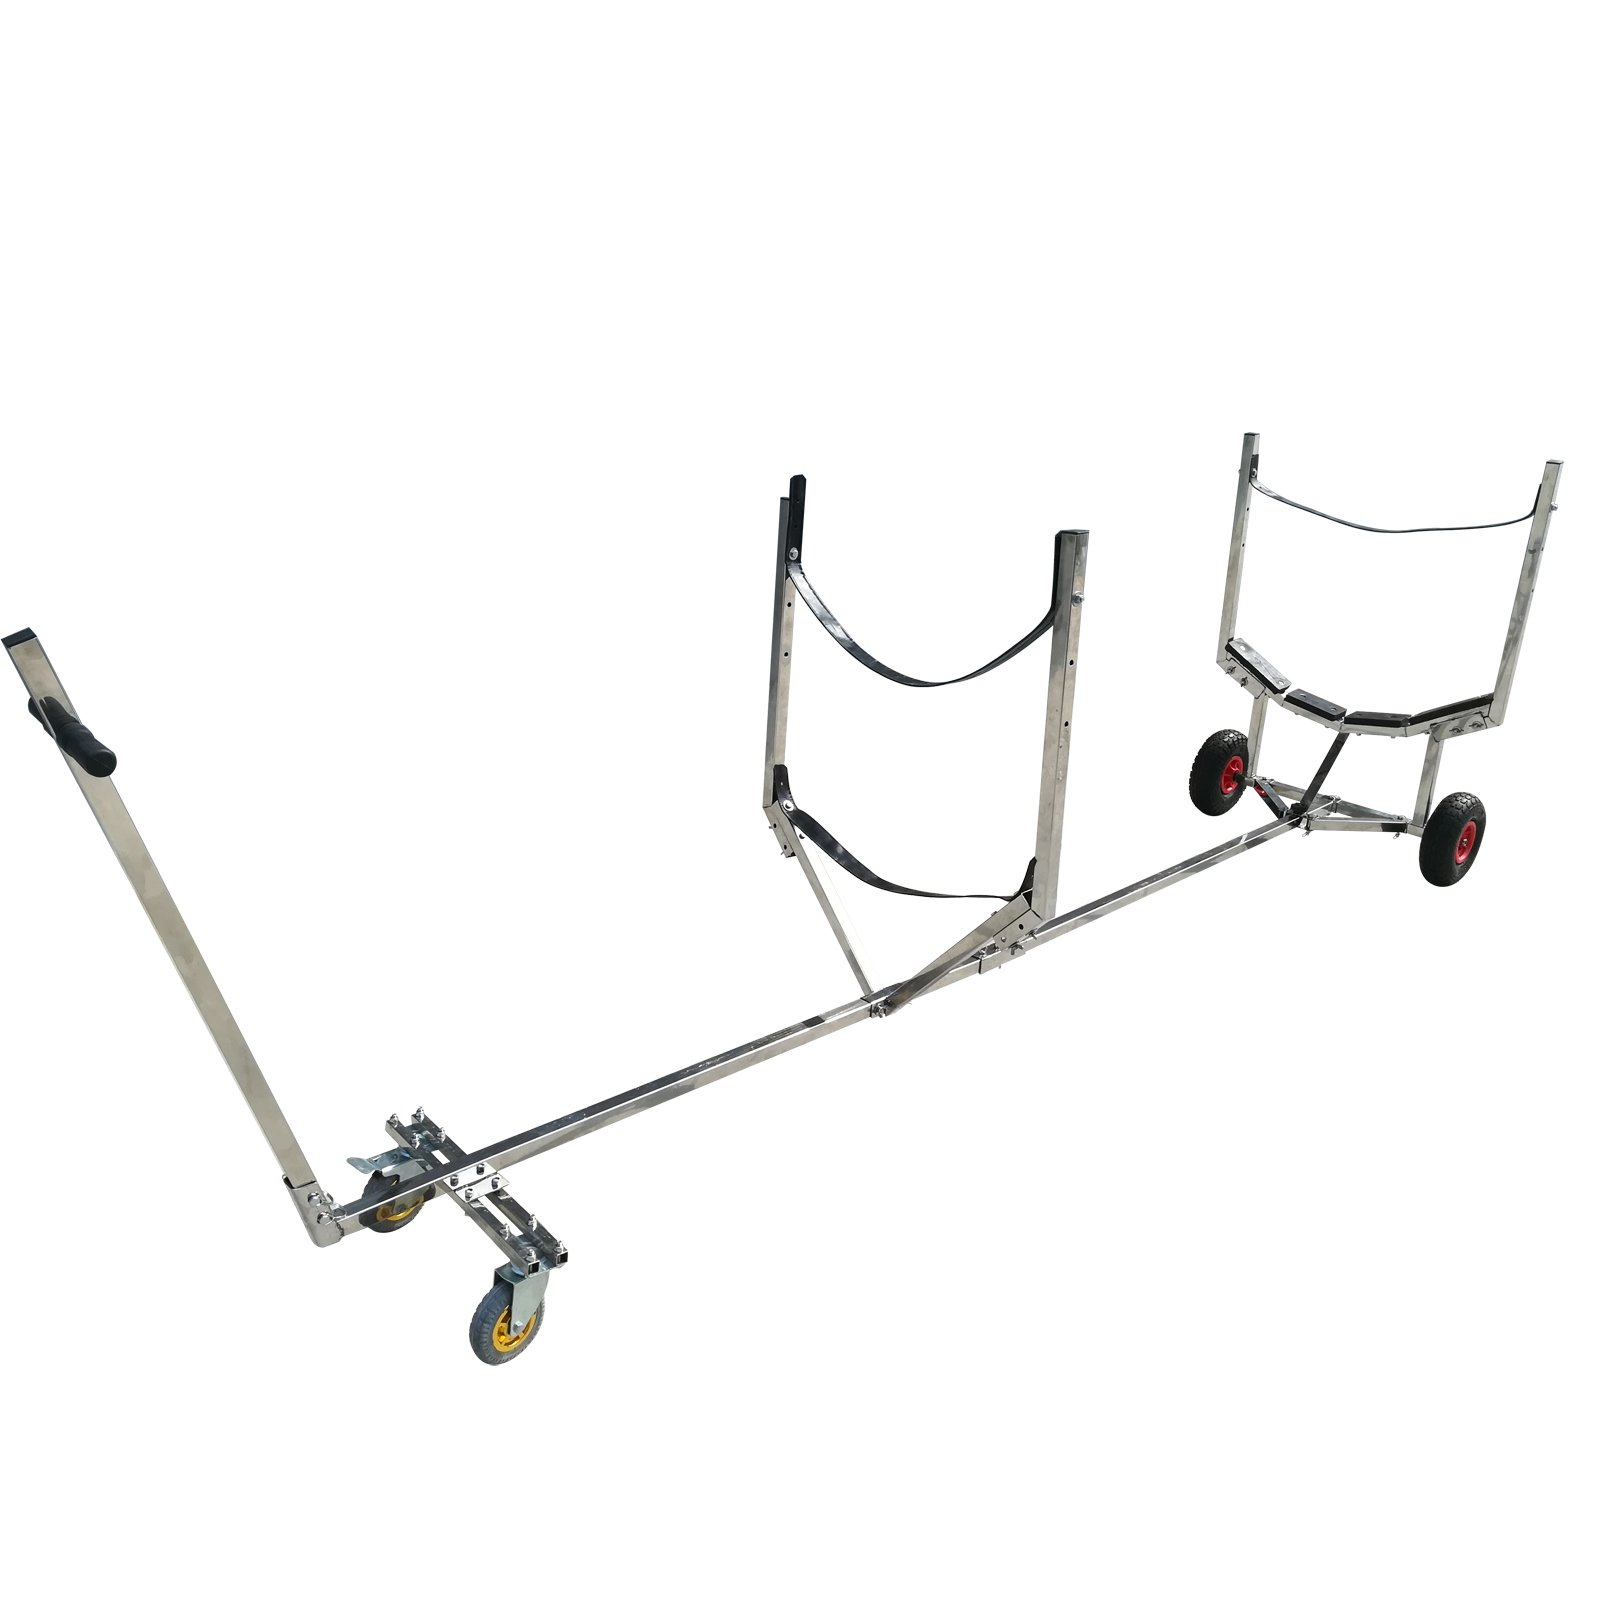 Stainless Steel Kayak Canoe Boat Launching Dolly Wheels Trailer by BRIS